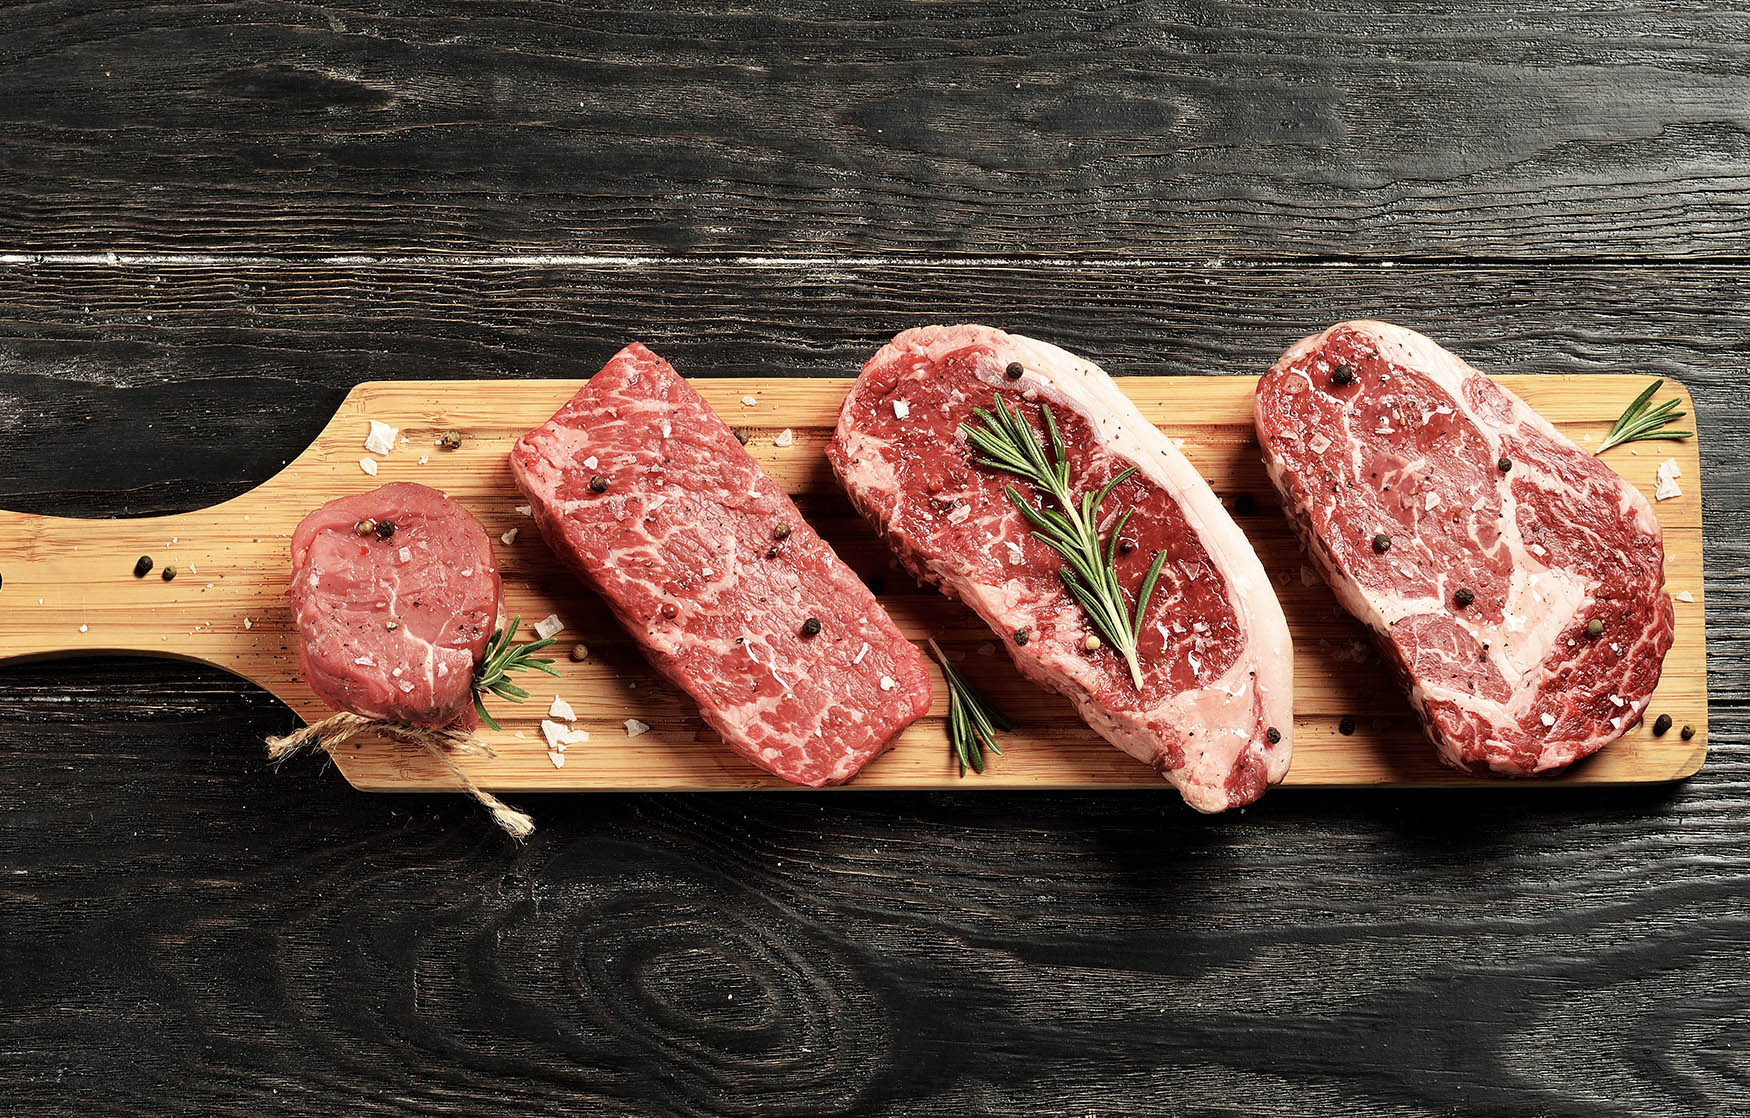 How to make frozen meat taste amazing every time